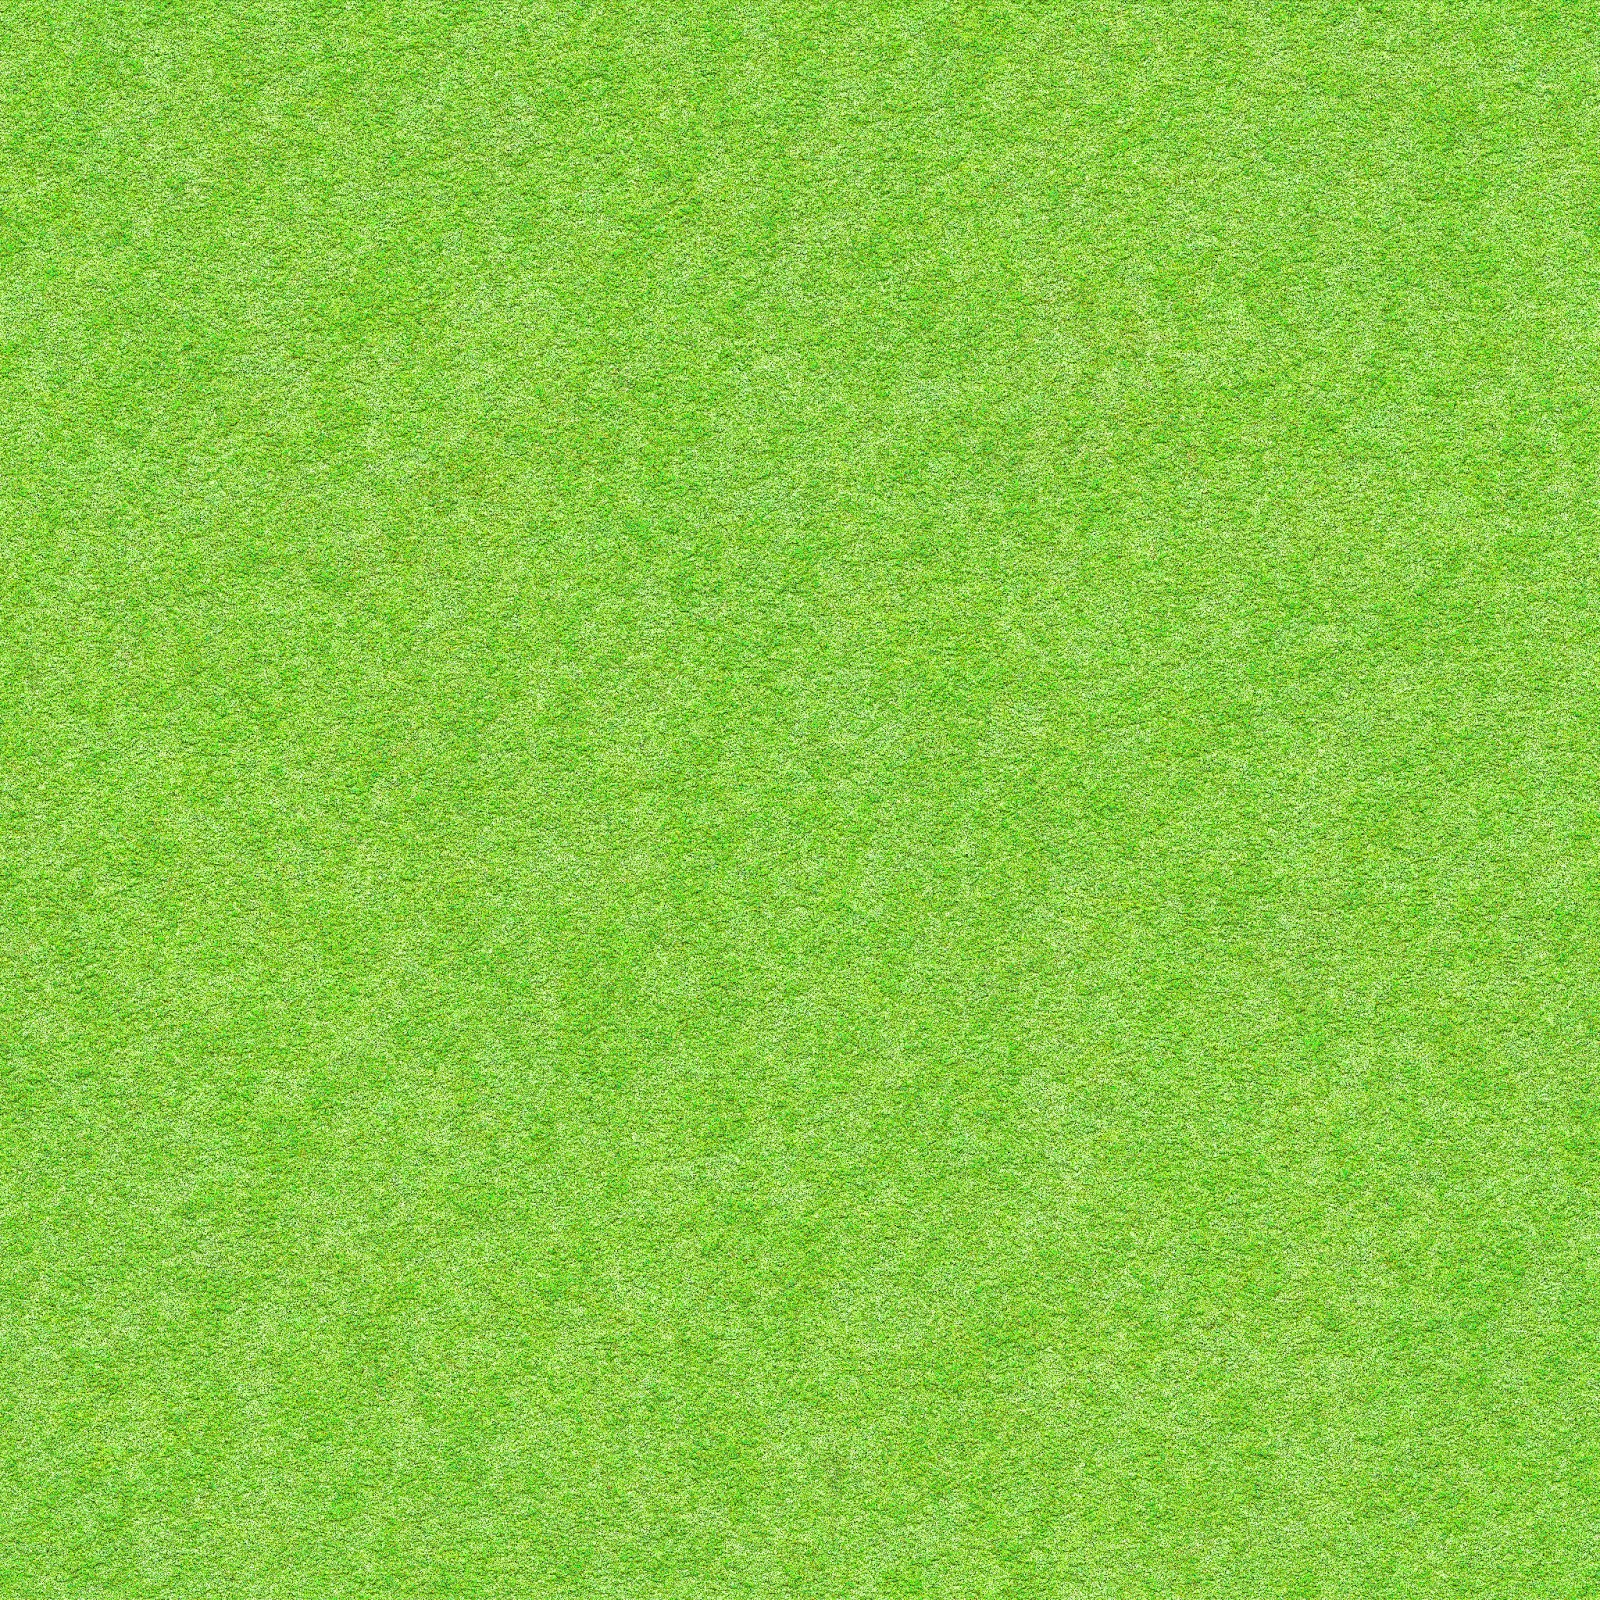 Green_grass_ground_land_dirt_aerial_top_seamless_texture